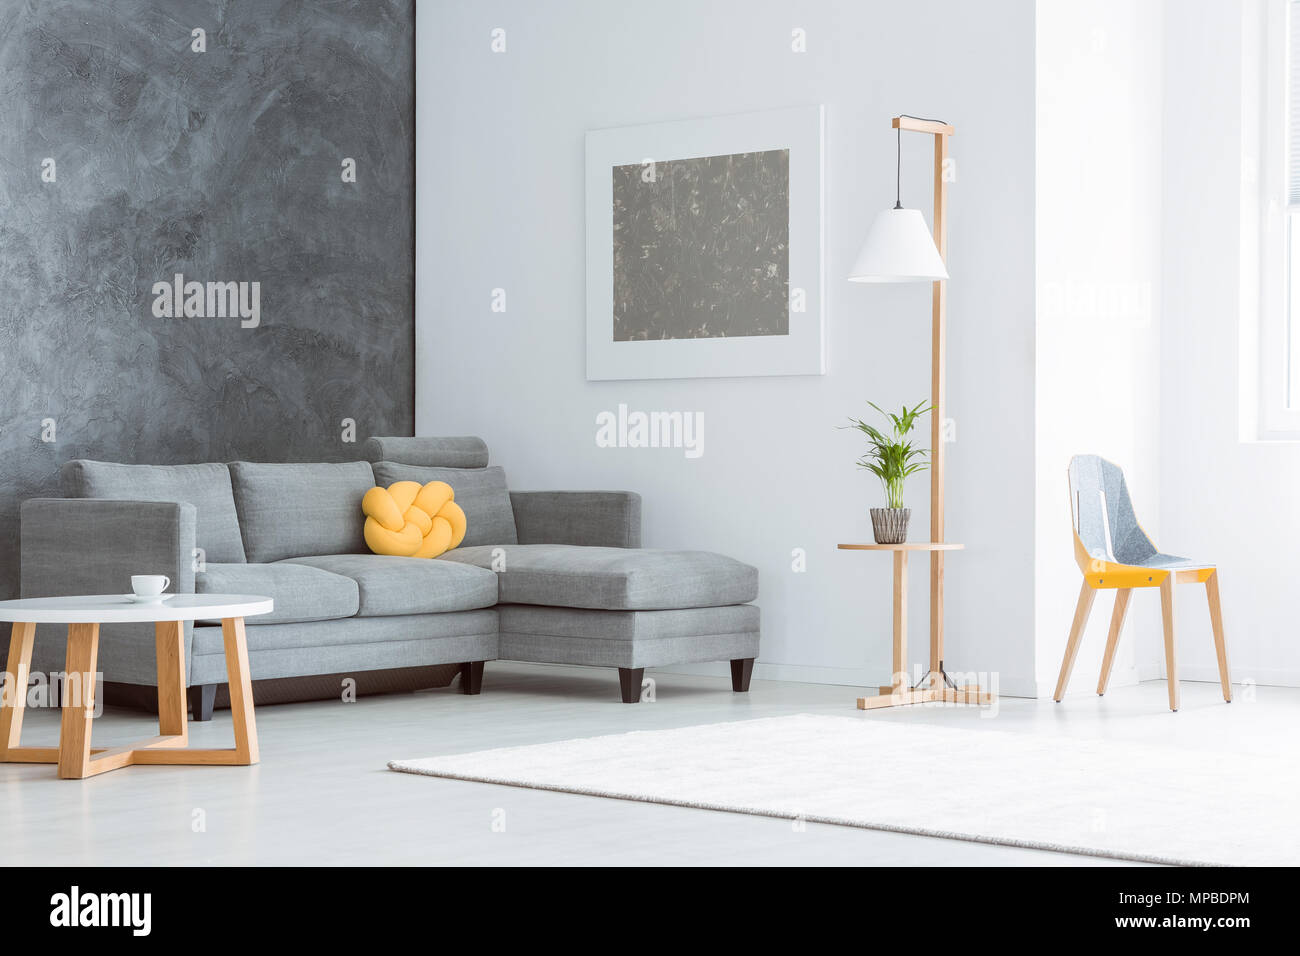 living room paint grey couch decorating ideas for with dark hardwood floors silver painting above set yellow pillow in spacious contrast walls